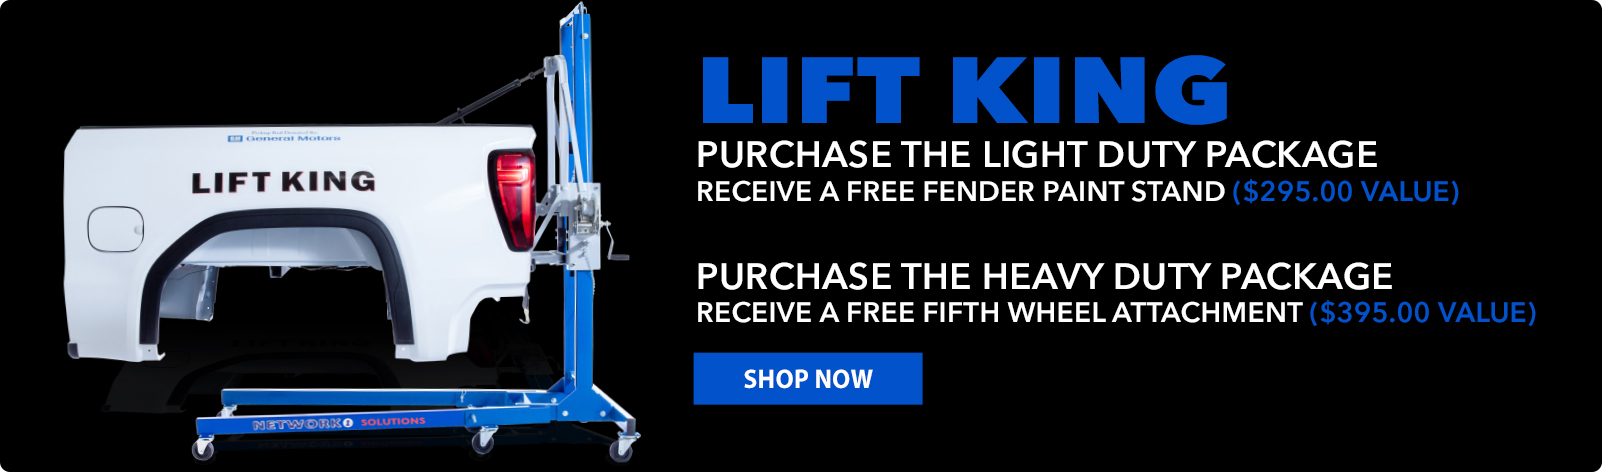 Free 5th Whell Attchemnt or Paint Stand with purchase of Heavy or Light Lift King Package!